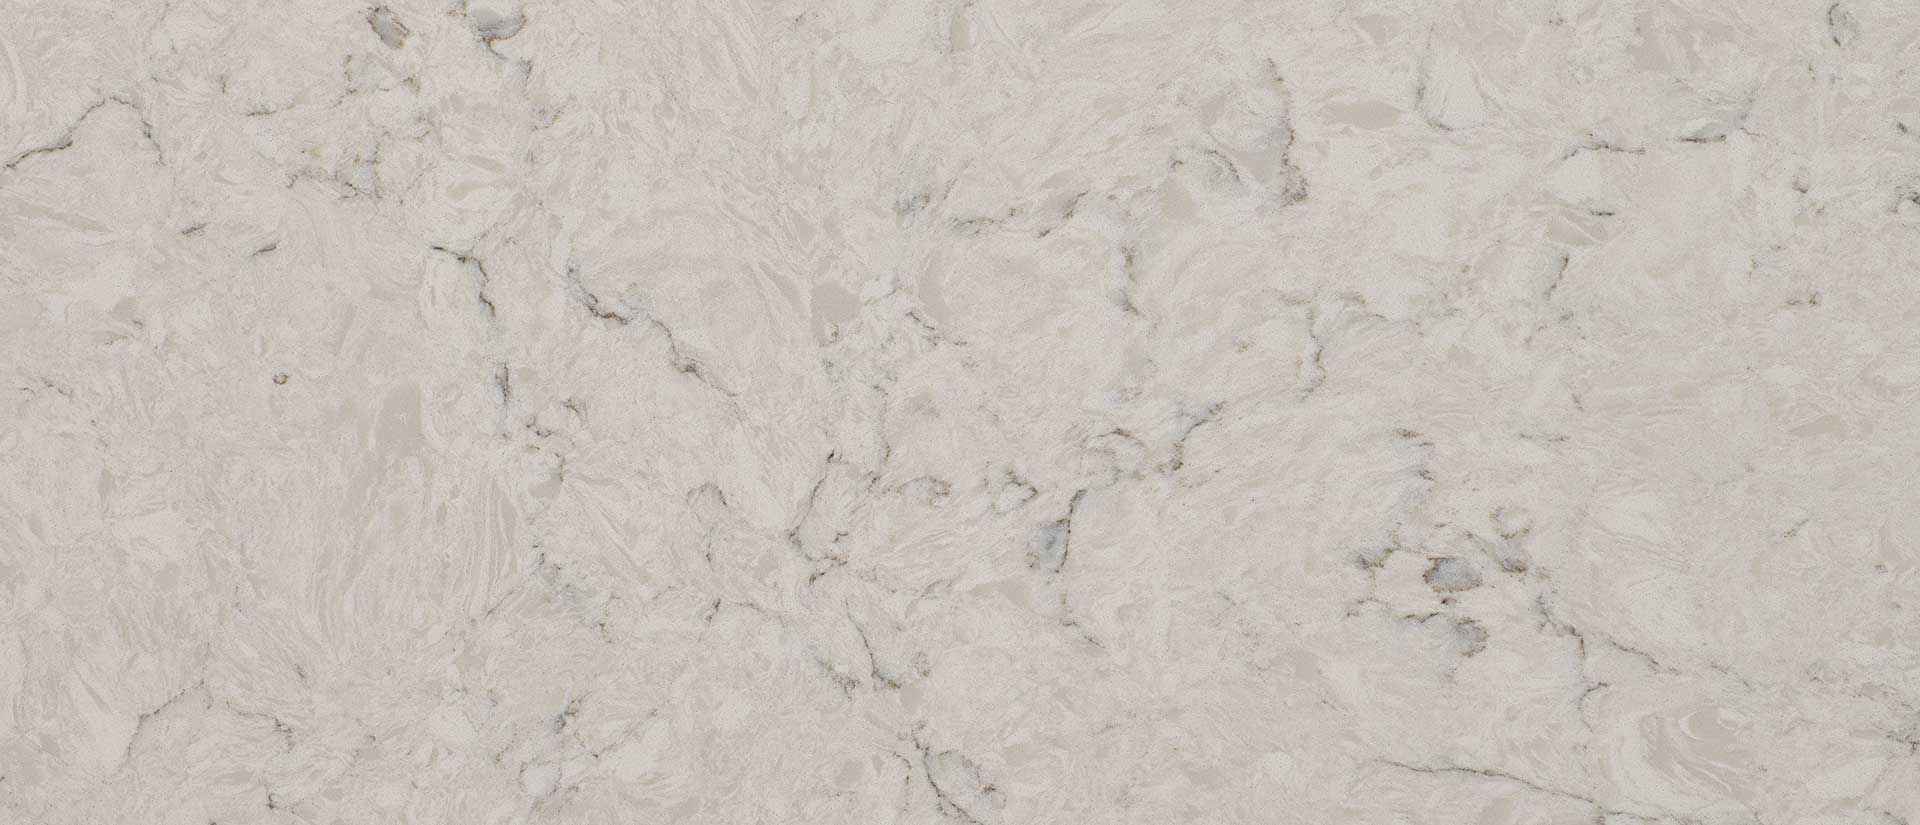 Carrara Mist Slab Quartz Group 3 Quartz Kitchen